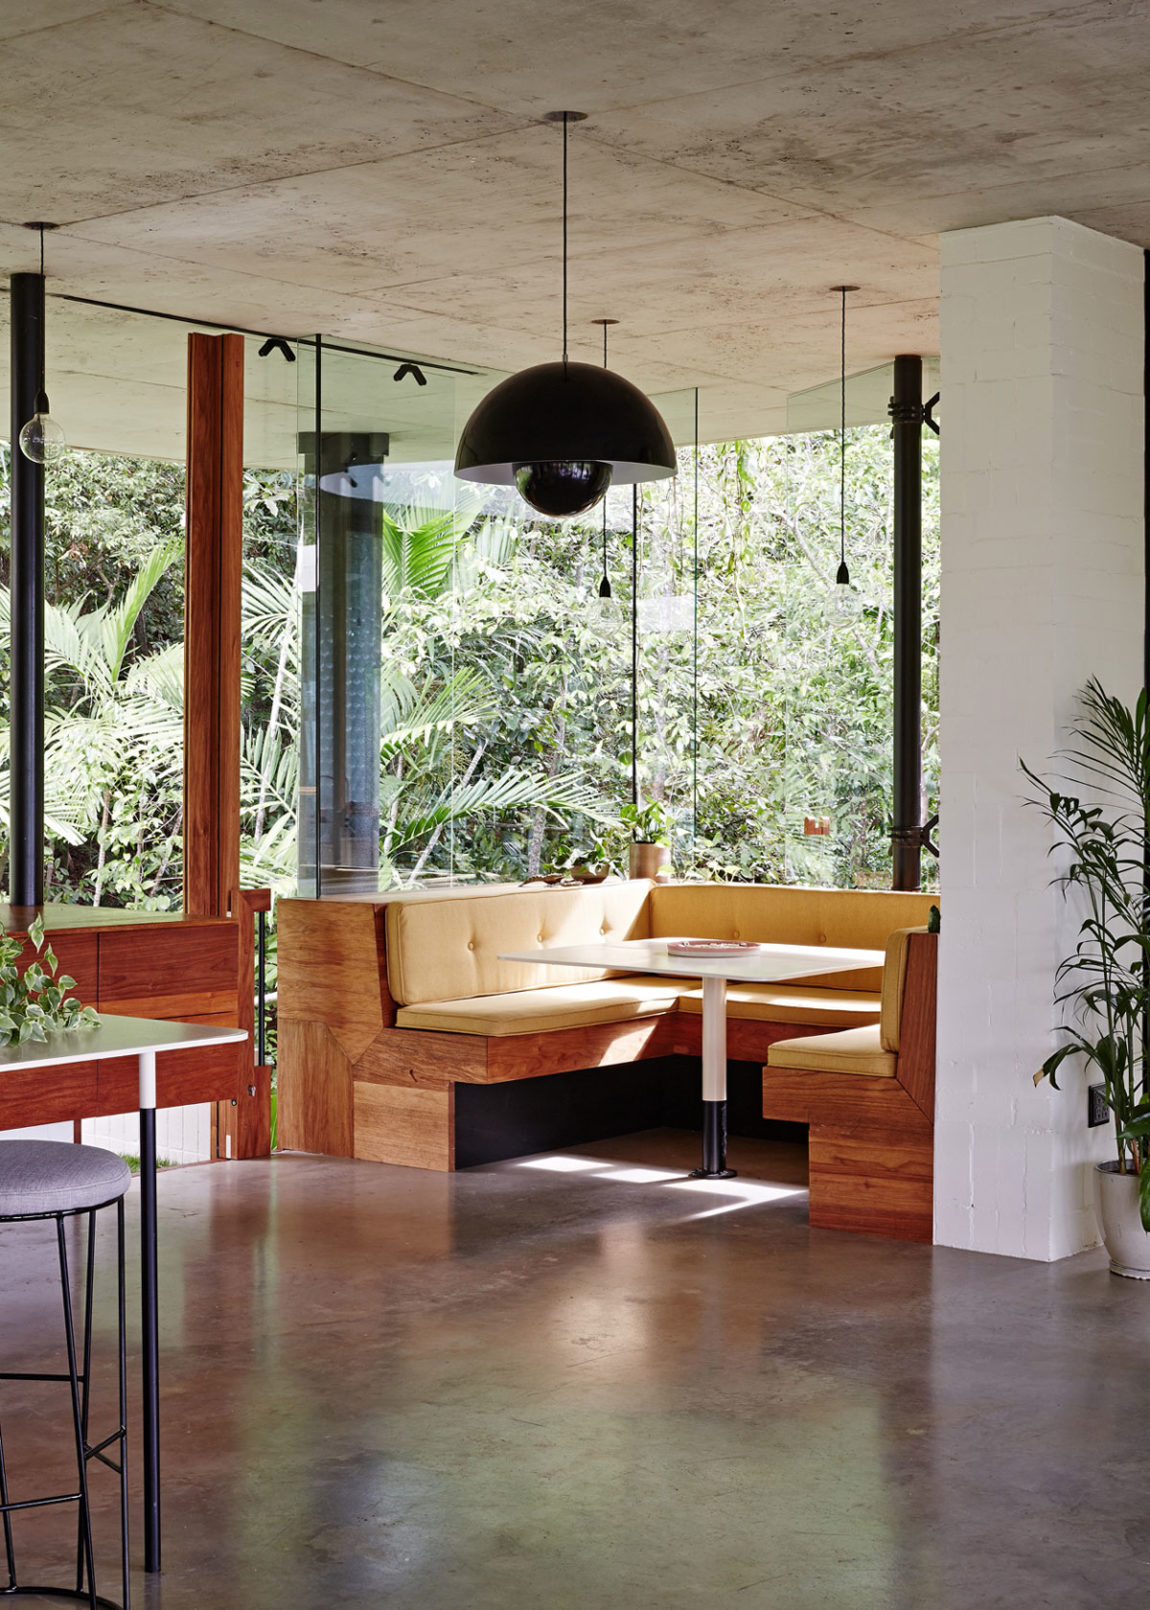 Planchonella House by Jesse Bennett­ Architect (11)